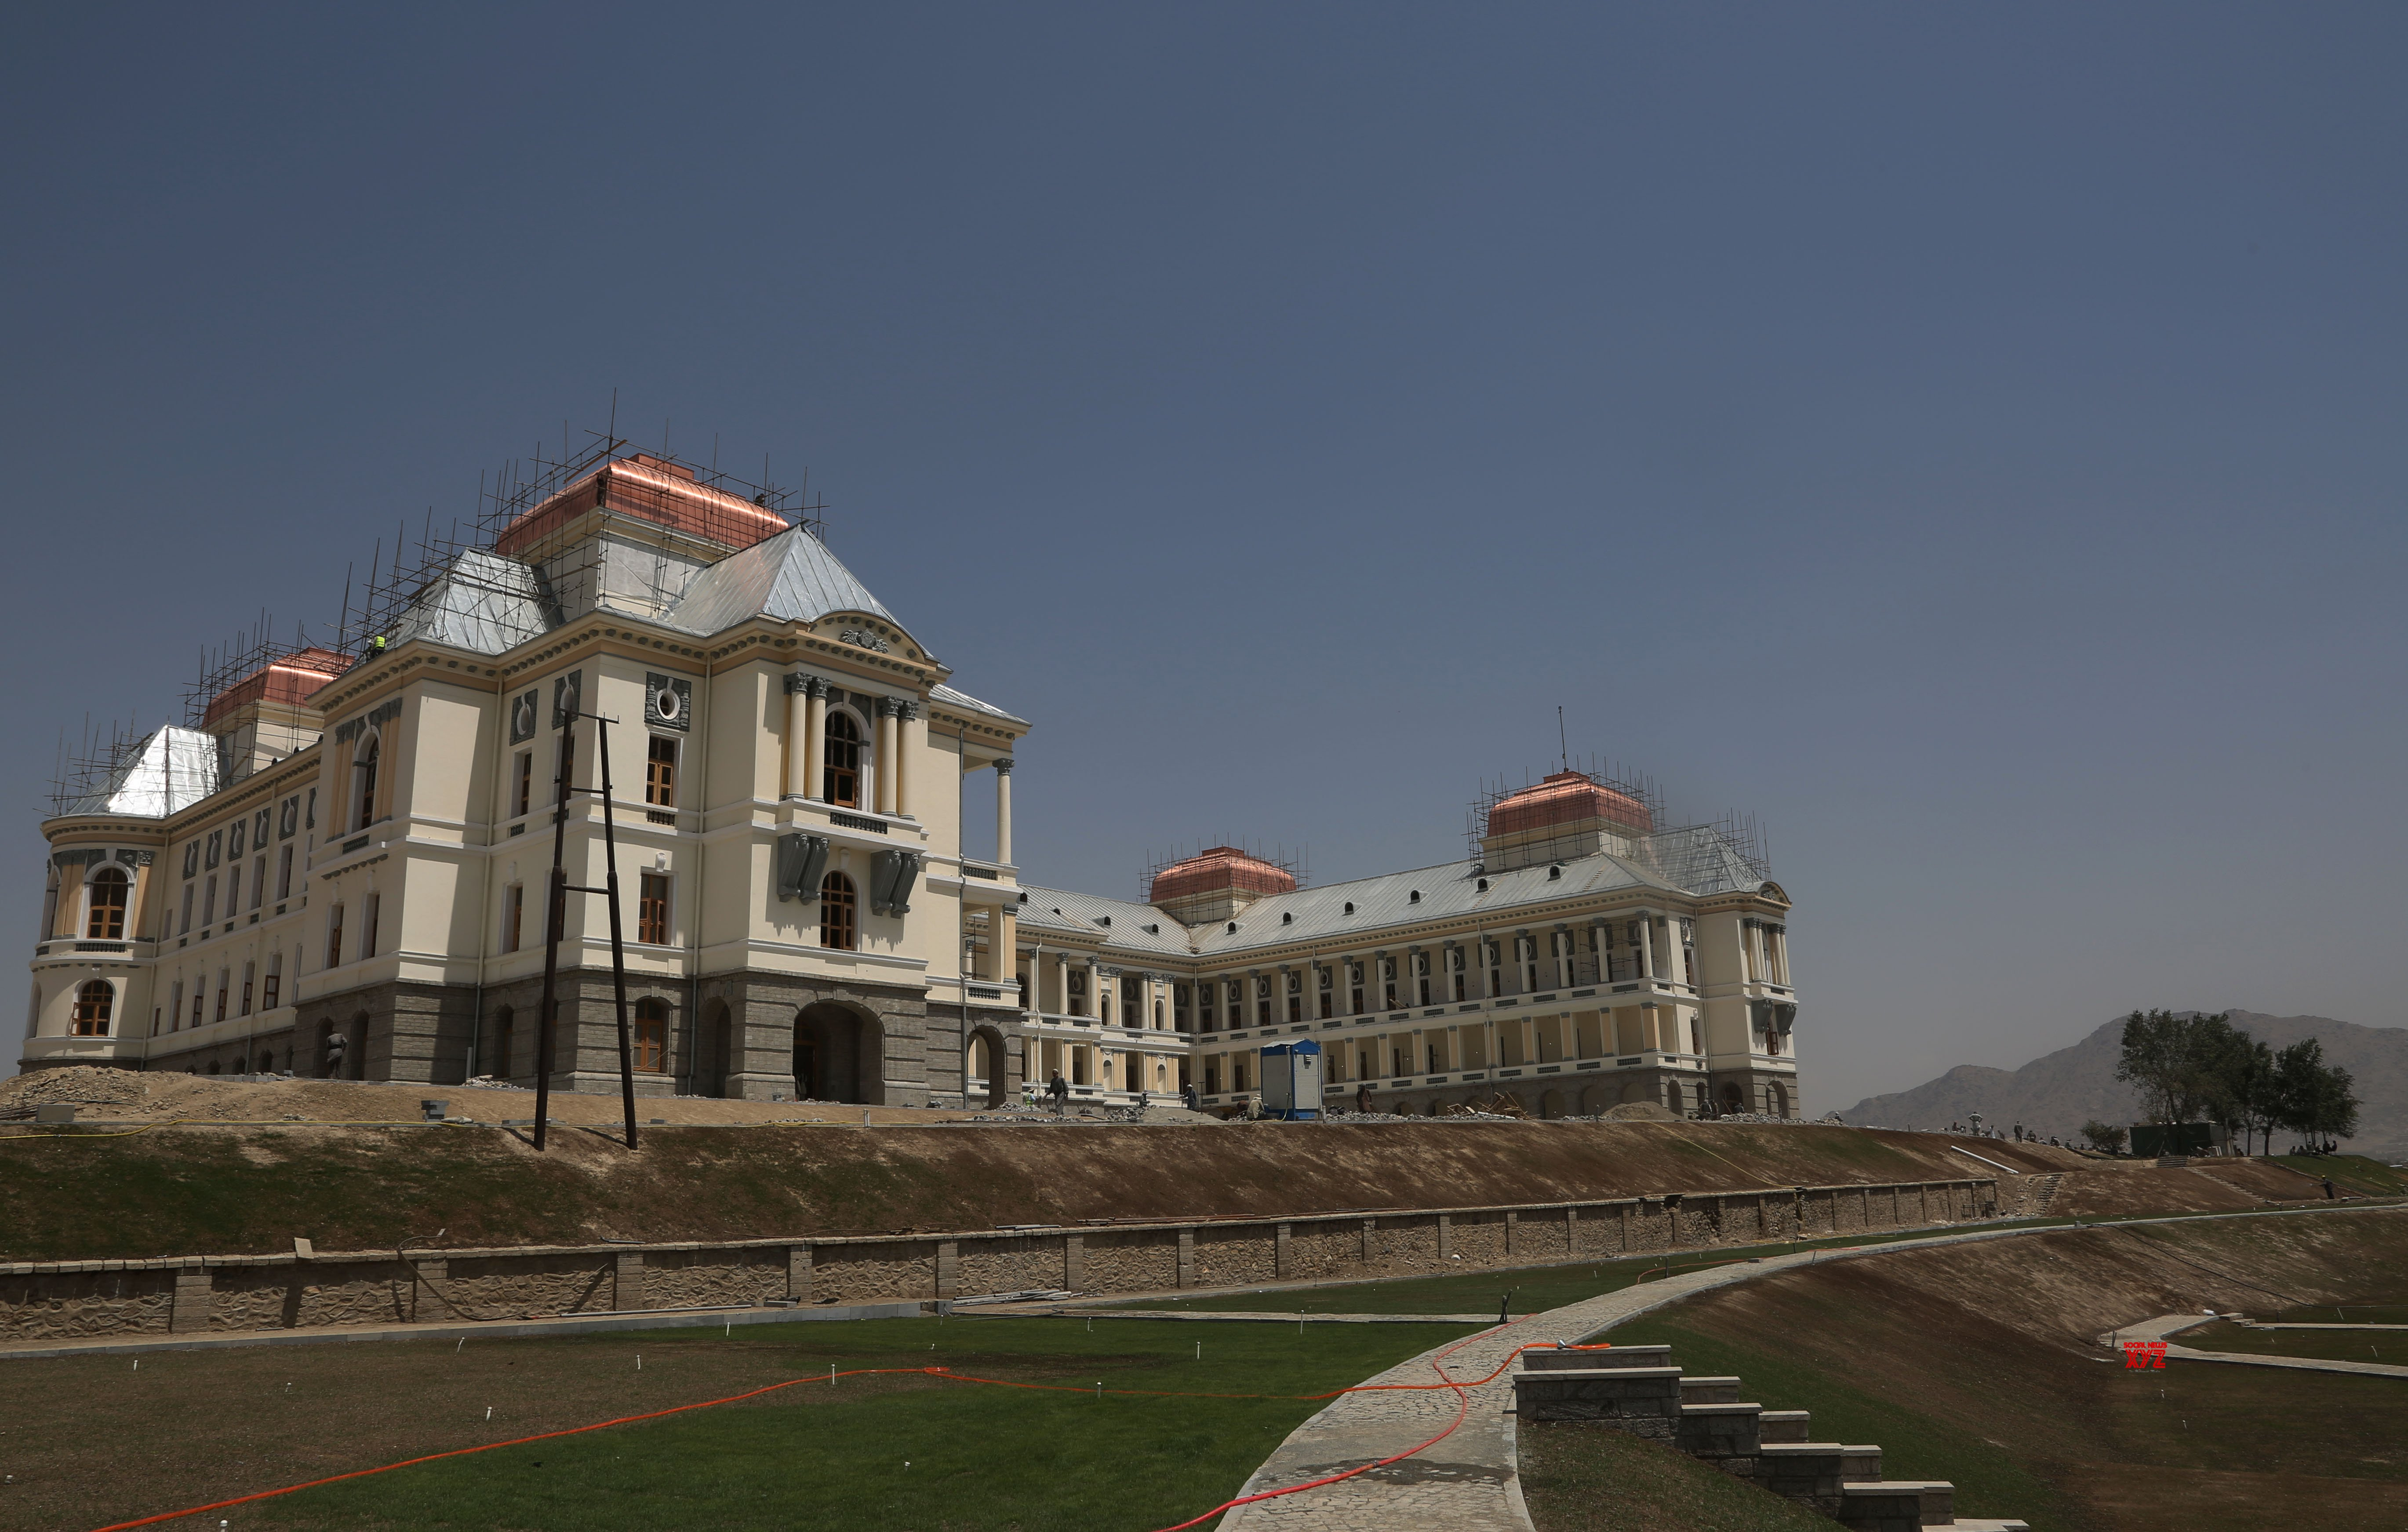 AFGHANISTAN - KABUL - DARUL AMAN PALACE - RECONSTRUCTION #Gallery